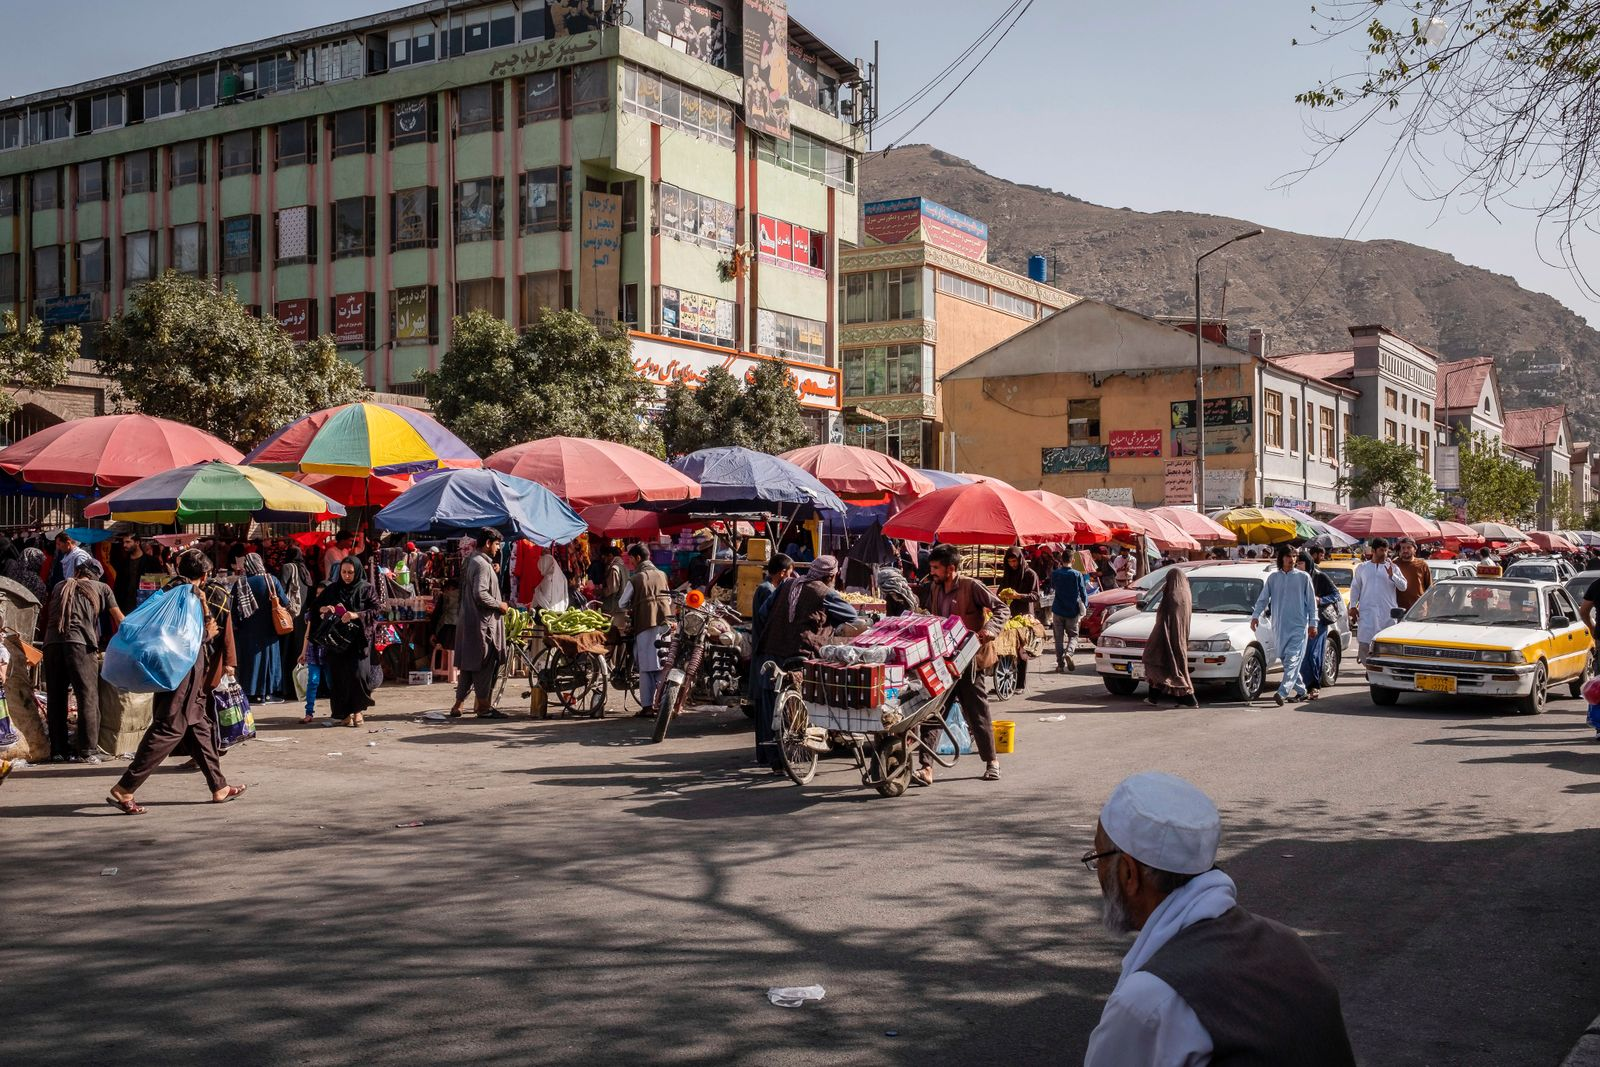 Daily Life in the Commercial Heart of Kabul